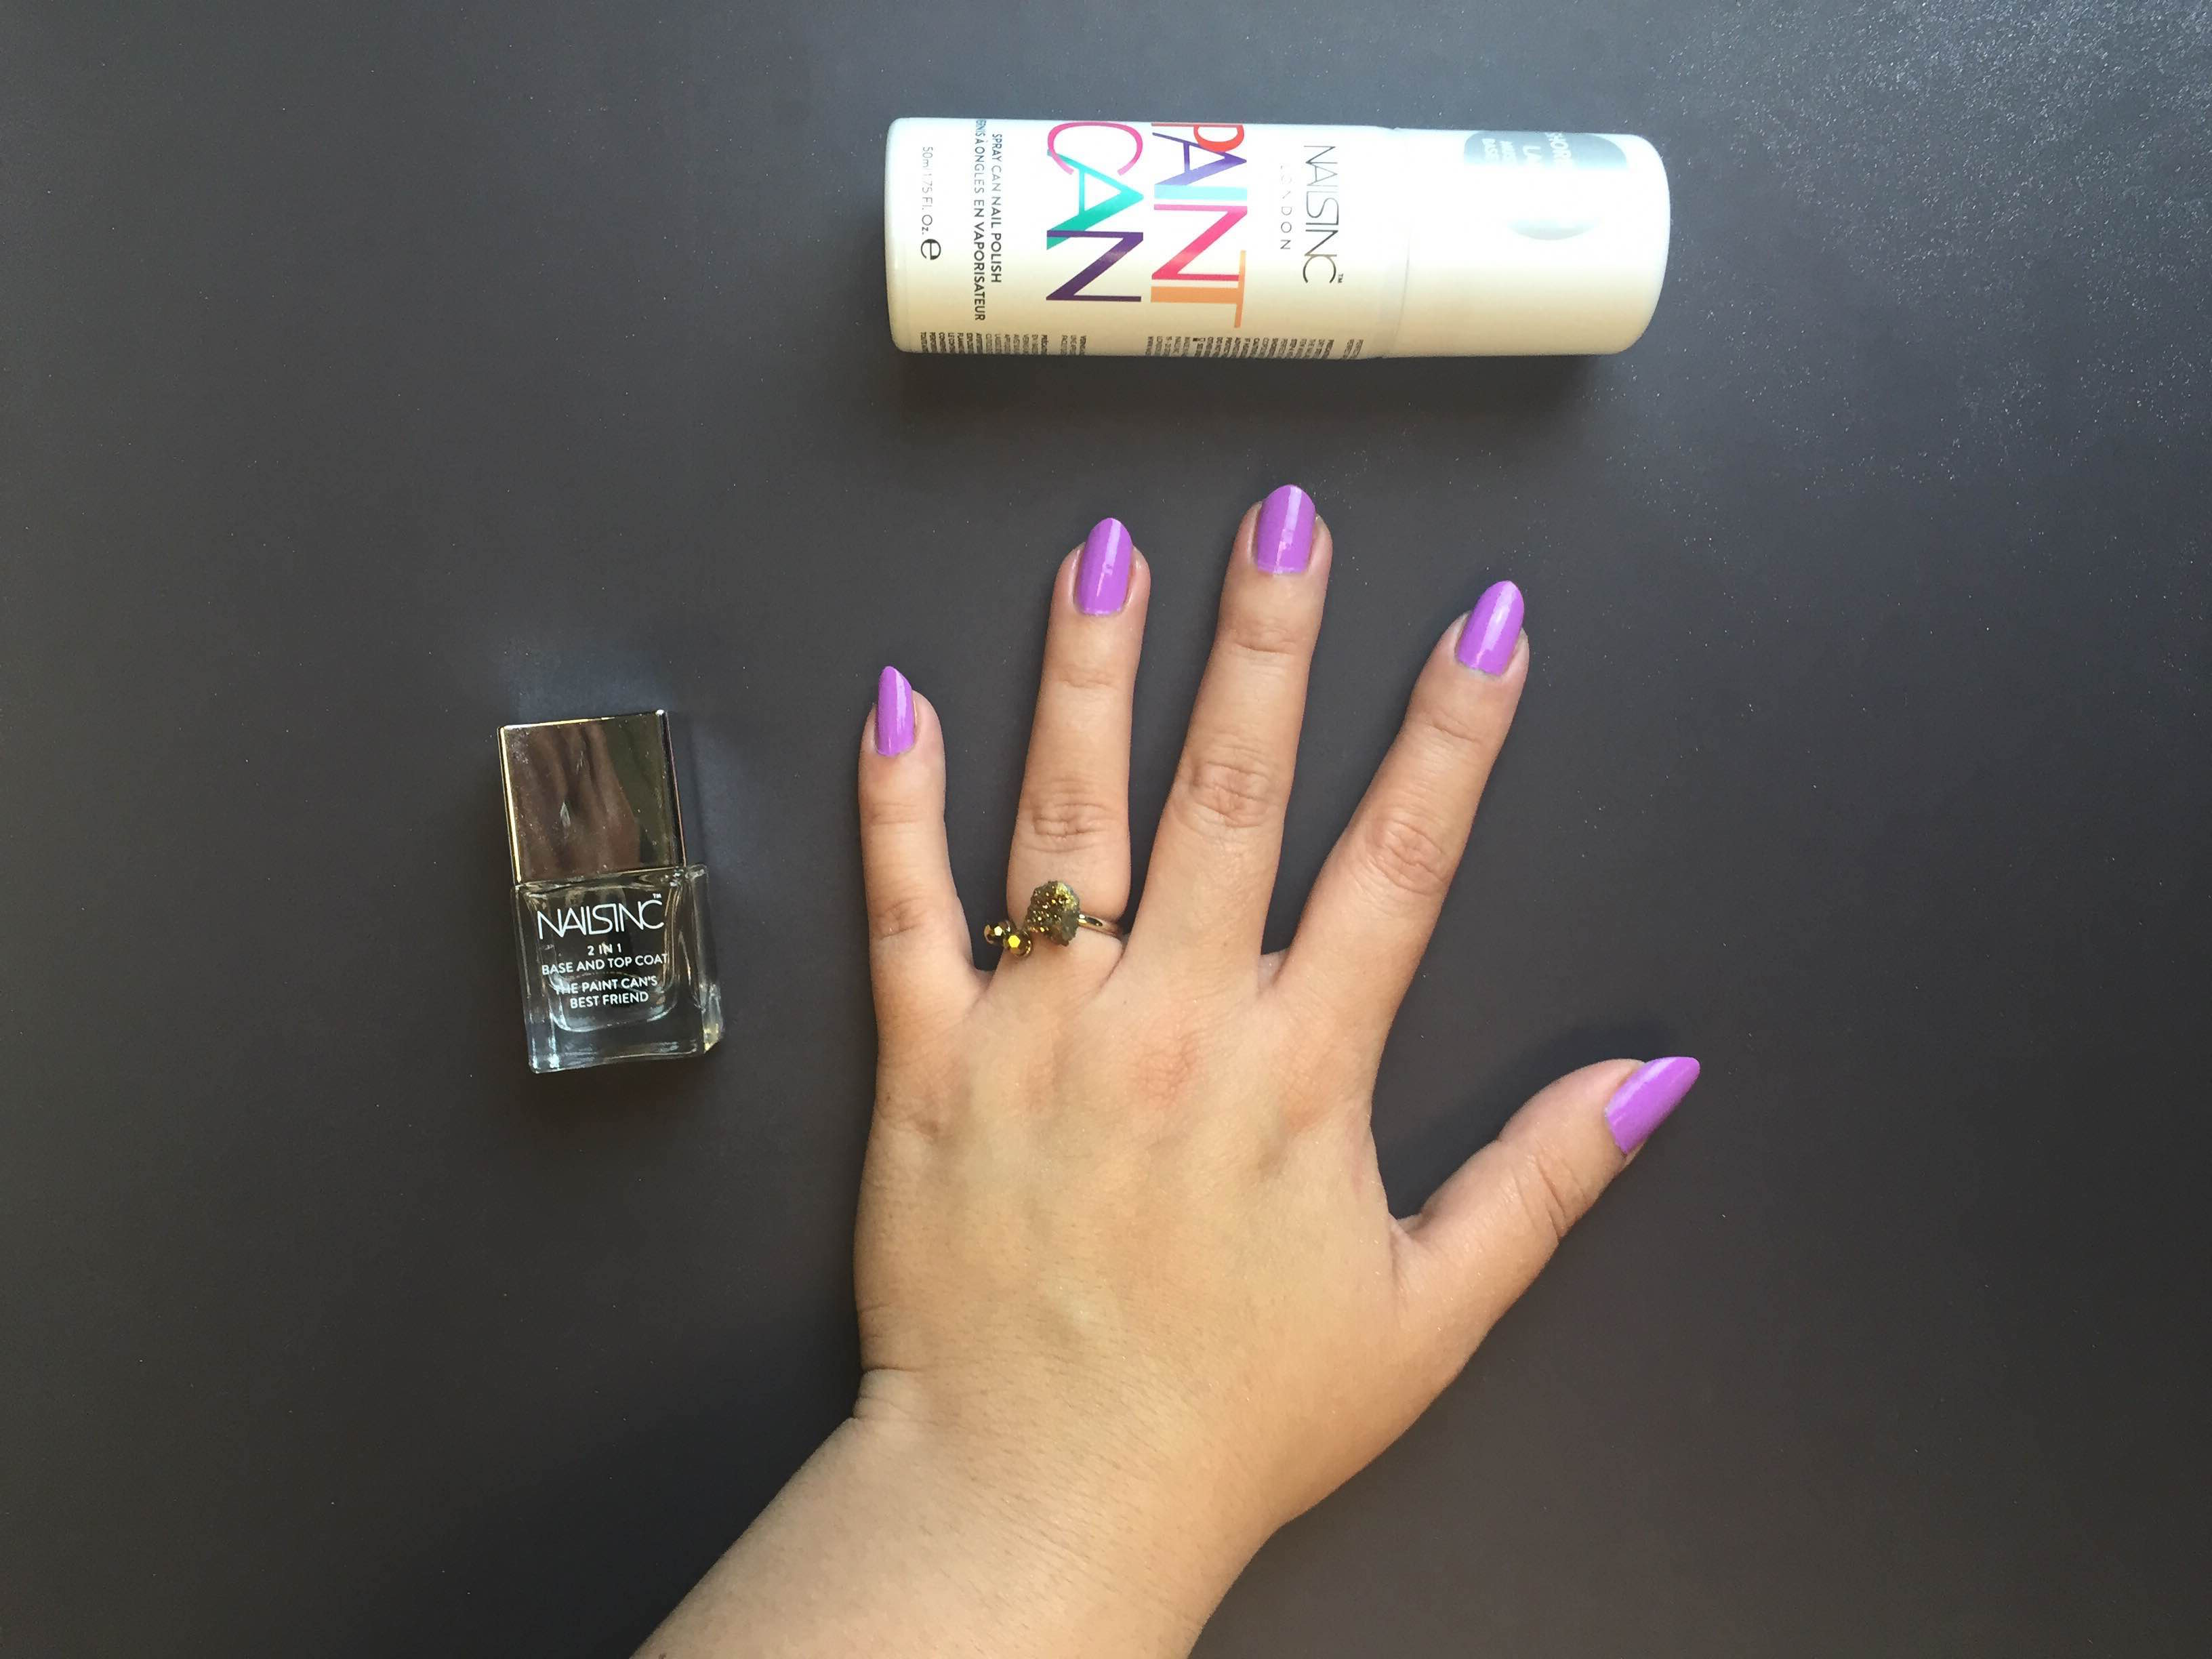 nails-in-spray-on-polish-tape-1